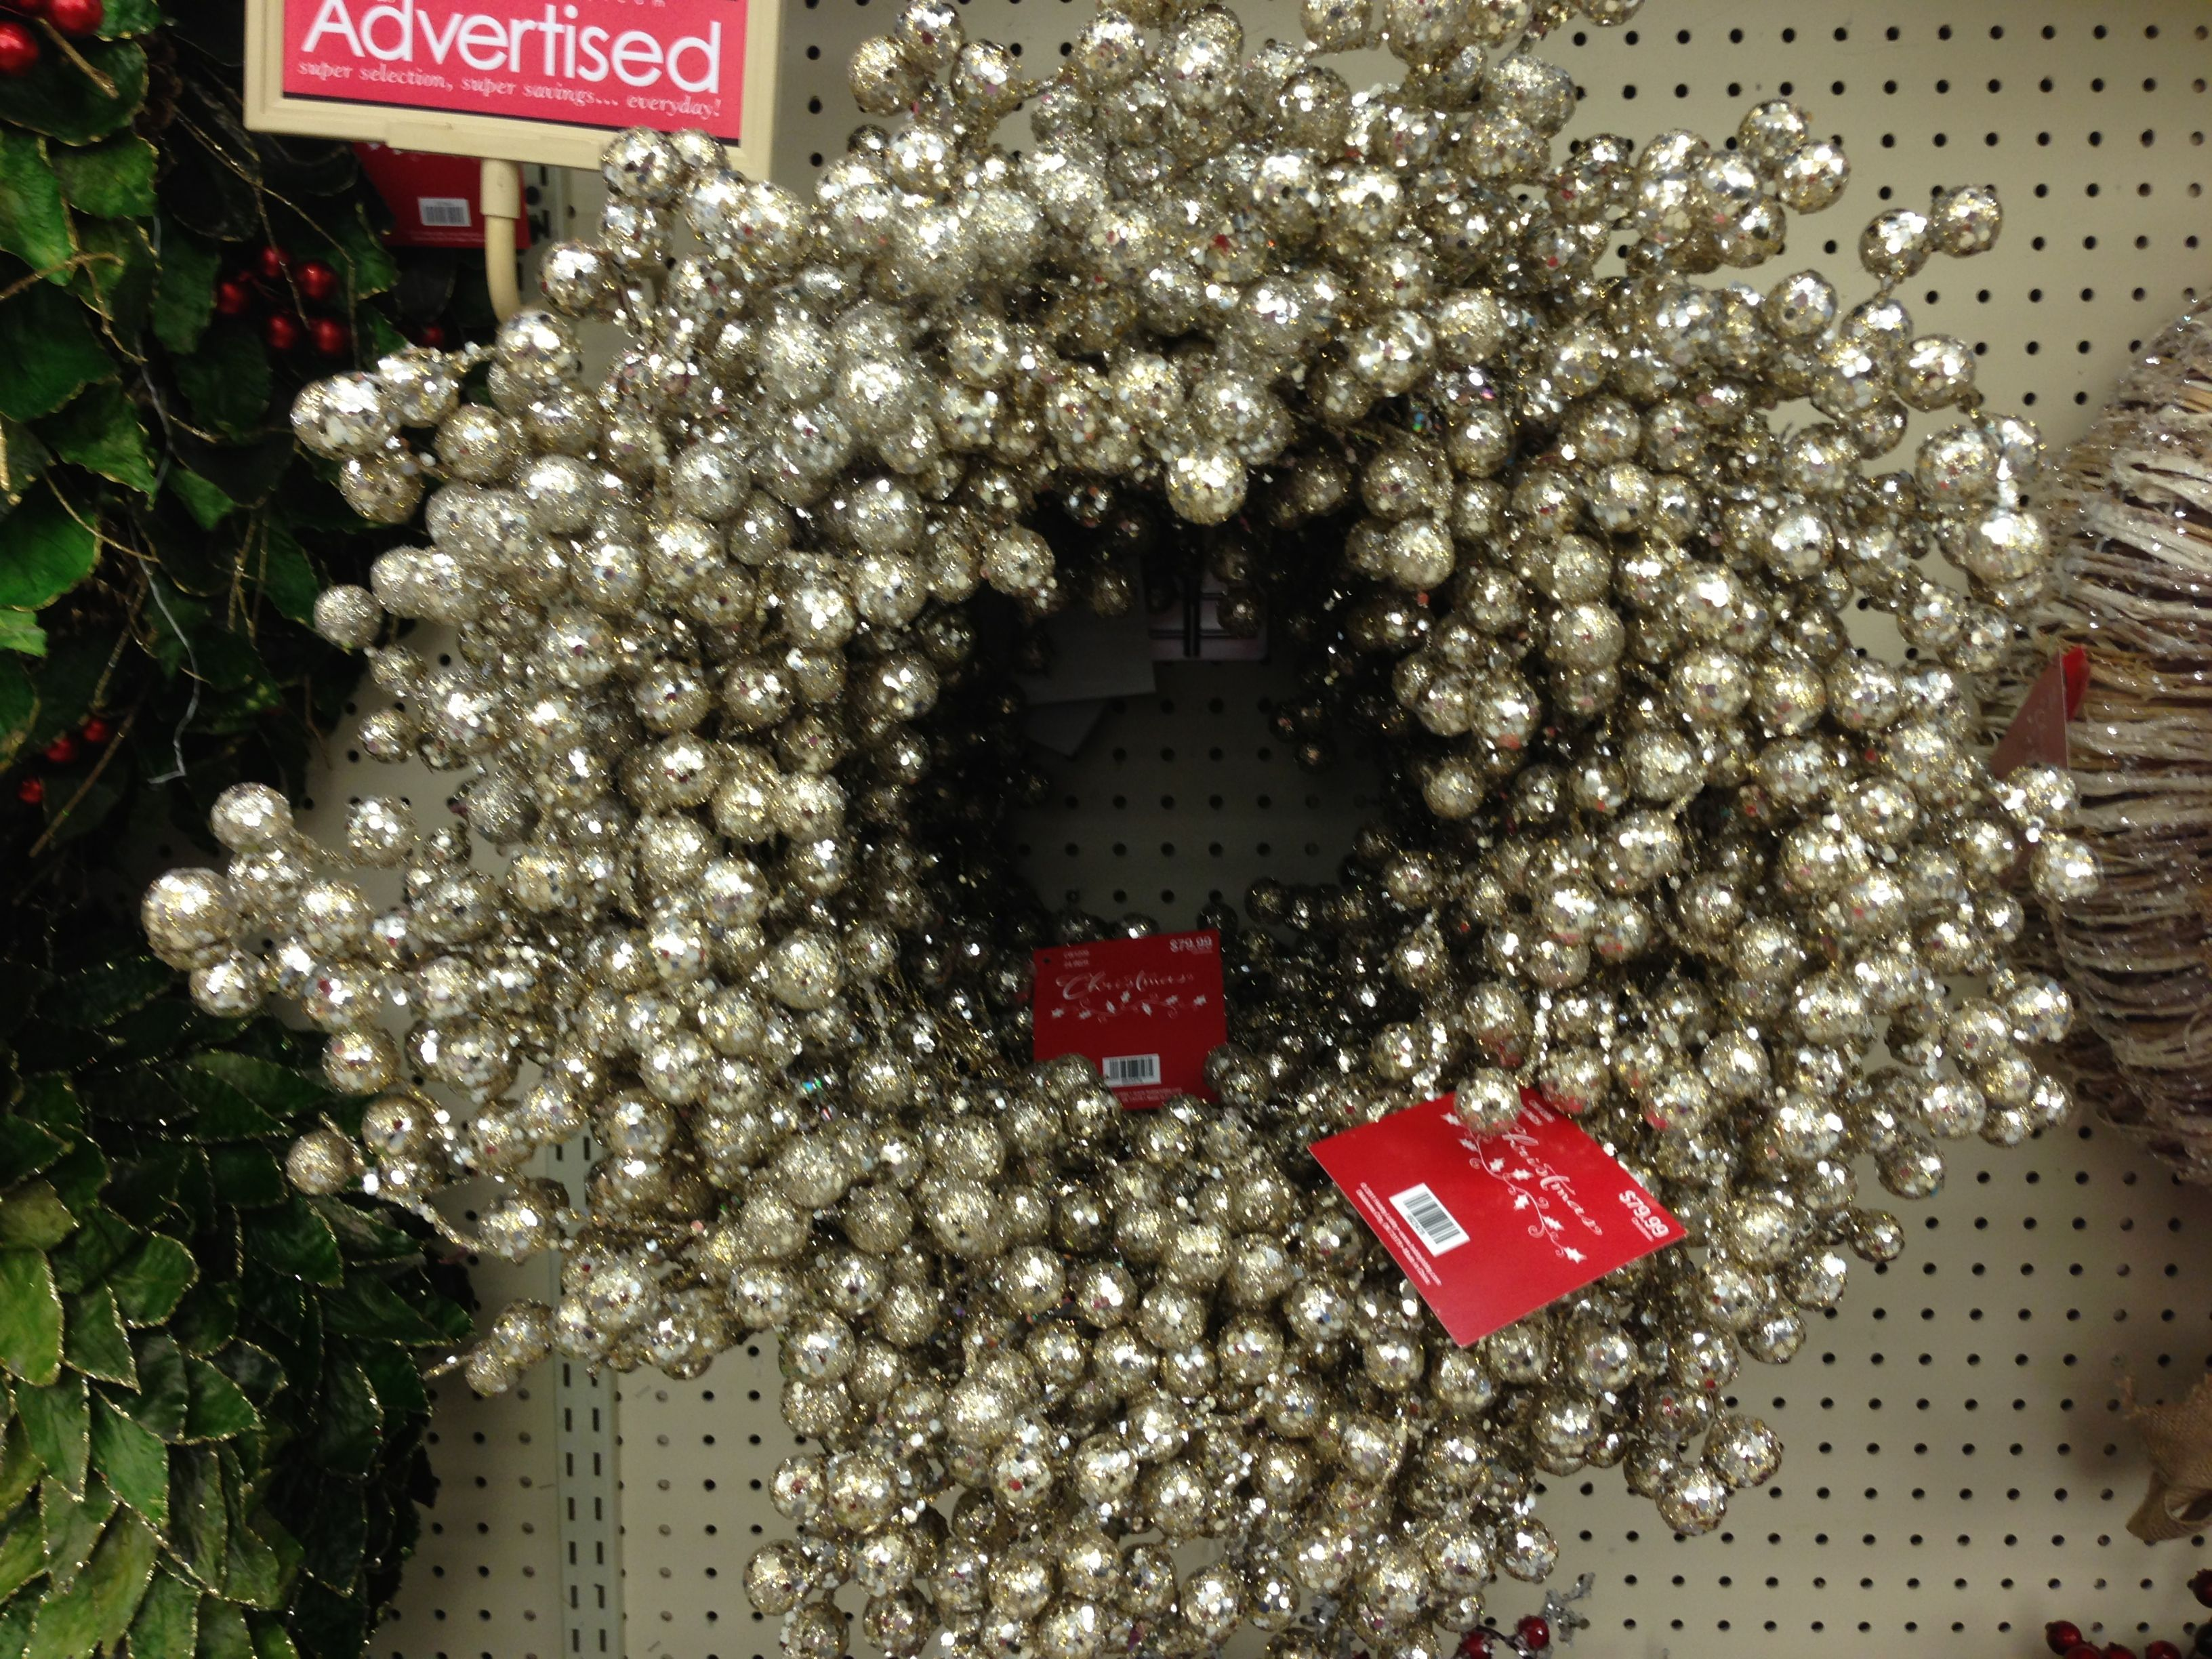 hobby lobby christmas wreath two hobby lobby christmas christmas wreaths lobbies - Hobby Lobby Christmas Wreaths